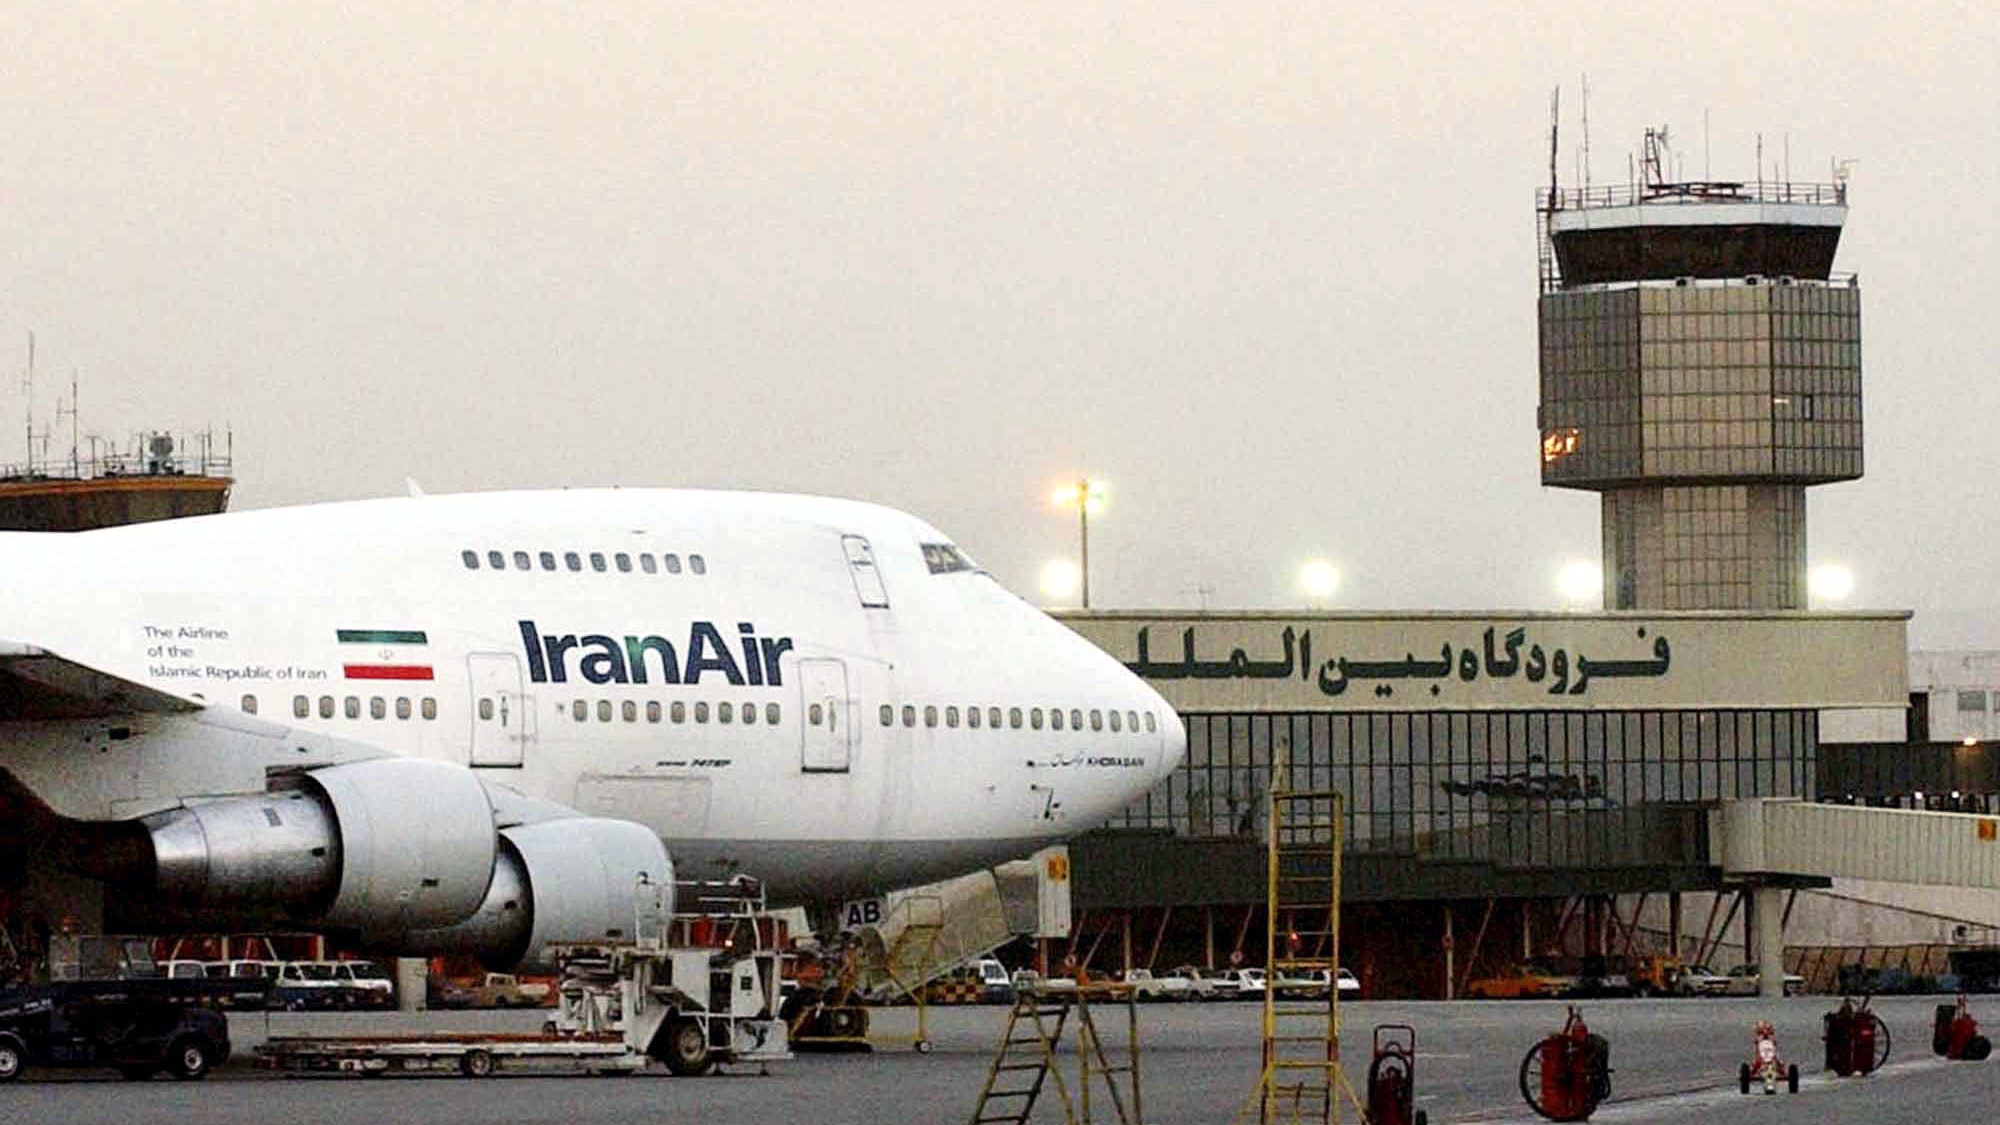 "FILE - In this June 2003 file photo, a Boeing 747 of Iran's national airline is seen at Mehrabad International Airport in Tehran. Boeing Co. has confirmed signing an agreement with Iran Air ""expressing the airline's intent"" to buy its aircraft. In a statement Tuesday to The Associated Press, Boeing said it signed the agreement ""under authorizations from the U.S. government following a determination that Iran had met its obligations under the nuclear accord reached last summer."""